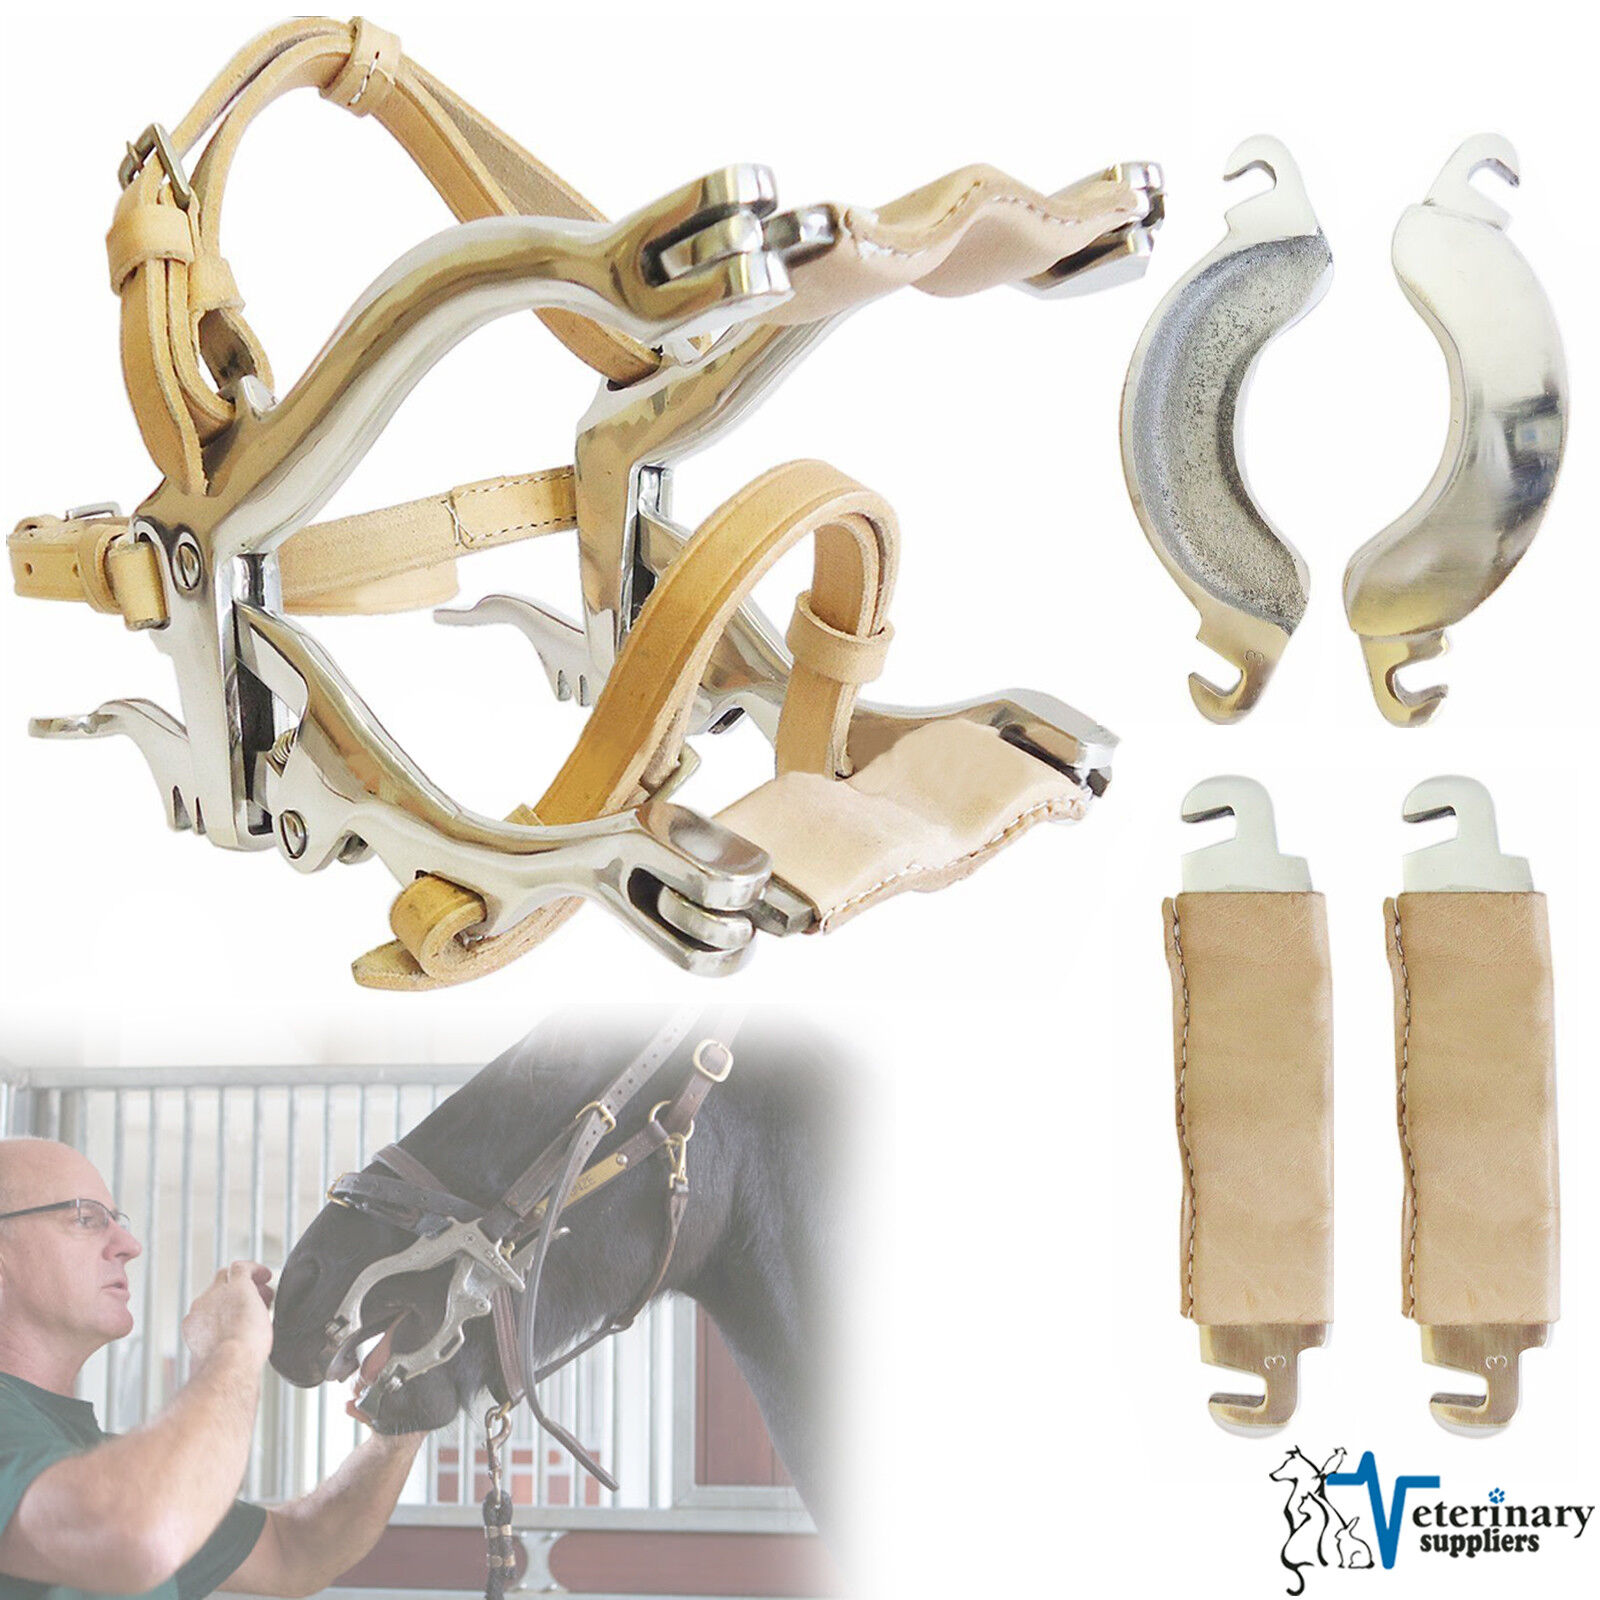 ENQUINE Dental Speculum HORSE MOUTH GAG w 4 PLATES Authentic BrOwn LEATHER STRAP